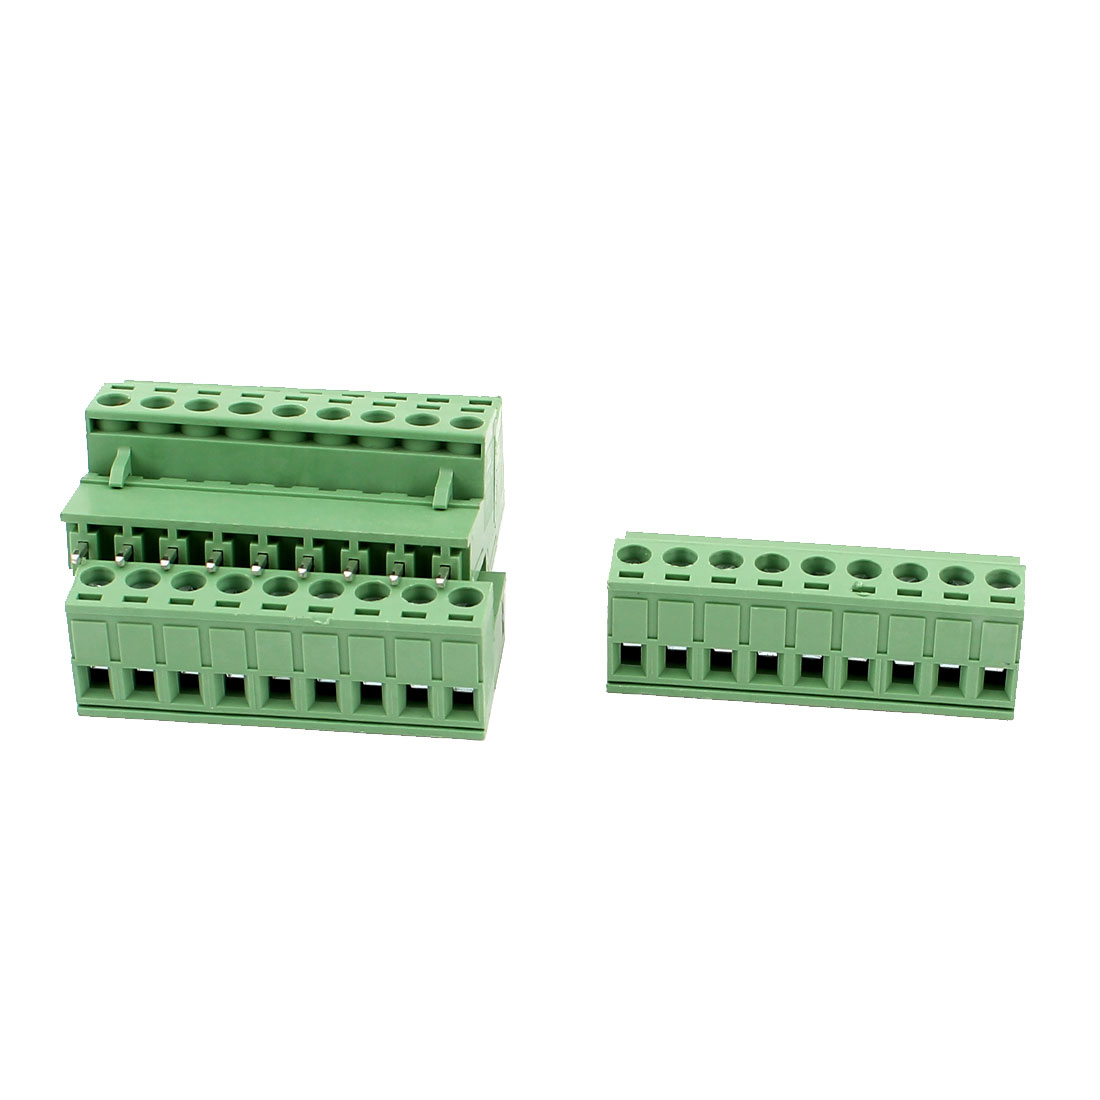 4 Pcs AC 300V 10A 9 Pins PCB Screw Terminal Block Connector 5.08mm Pitch Green